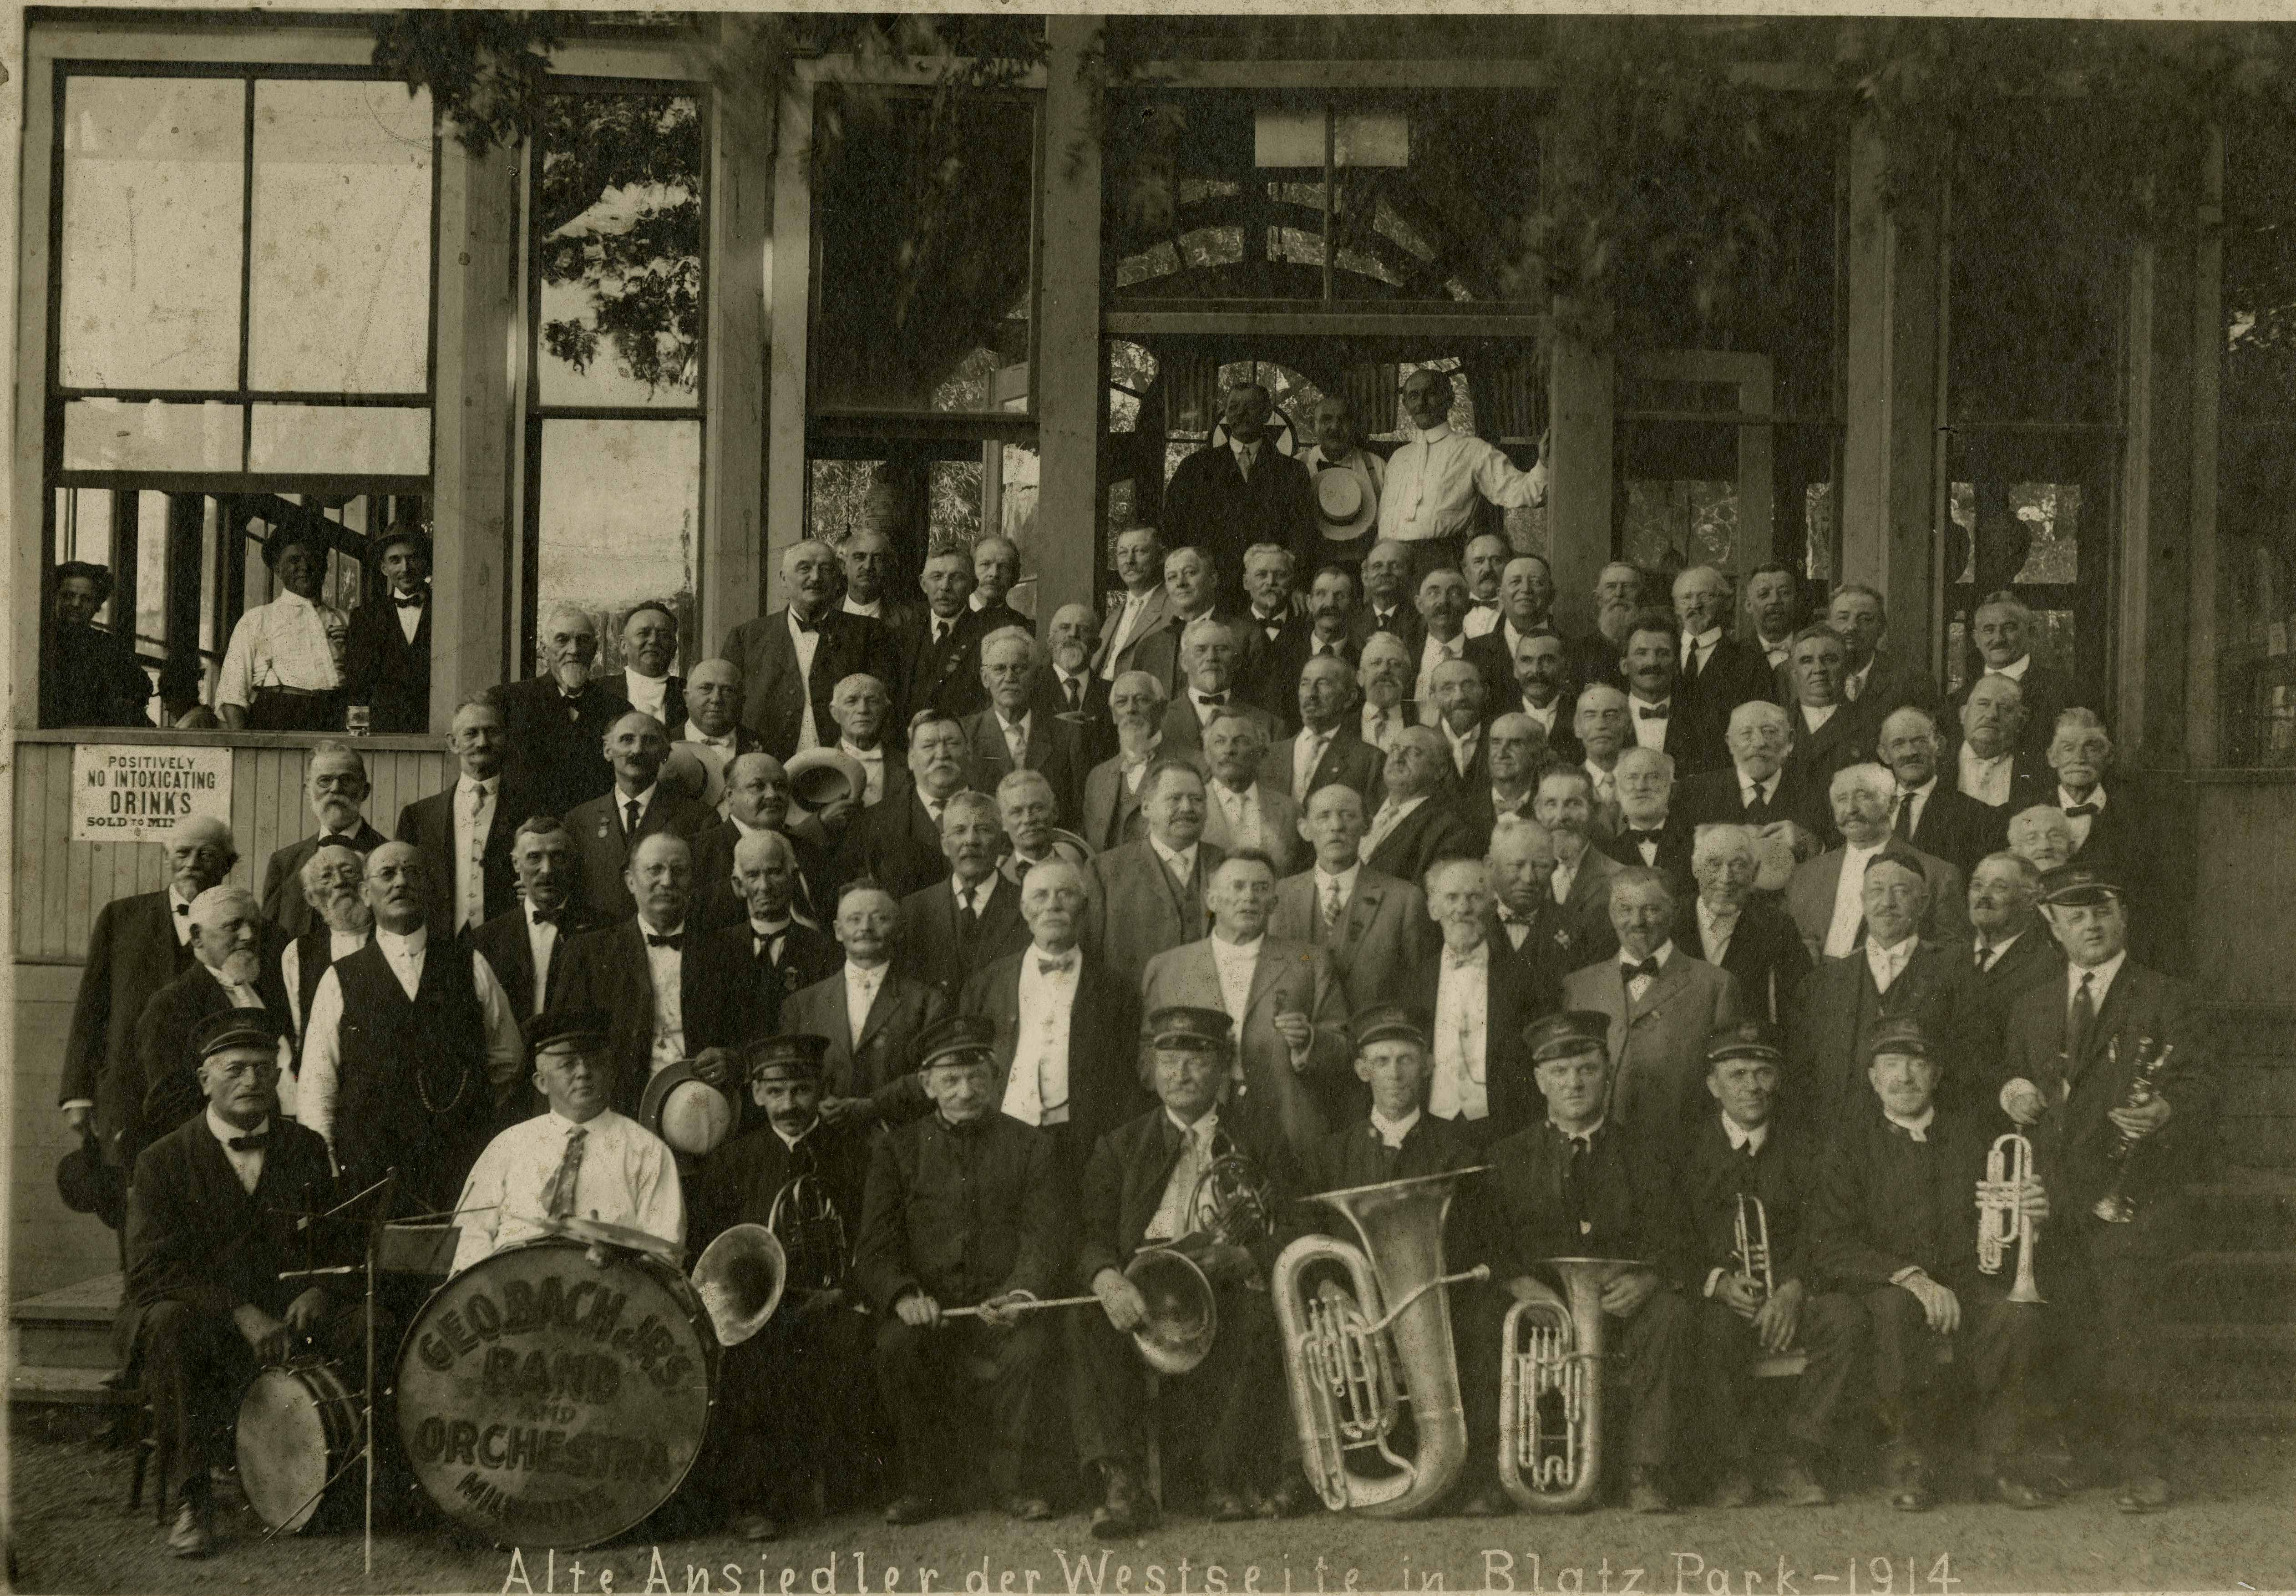 <table class=&quot;lightbox&quot;><tr><td colspan=2 class=&quot;lightbox-title&quot;>George Bach Jr.'s Band and Orchestra</td></tr><tr><td colspan=2 class=&quot;lightbox-caption&quot;>Photograph of a German community band and orchestra in Blatz Park in 1914. </td></tr><tr><td colspan=2 class=&quot;lightbox-spacer&quot;></td></tr><tr class=&quot;lightbox-detail&quot;><td class=&quot;cell-title&quot;>Source: </td><td class=&quot;cell-value&quot;>From the Historic Photo Collection of the Milwaukee Public Library. Reprinted with permission.<br /><a href=&quot;http://content.mpl.org/cdm/singleitem/collection/HstoricPho/id/5167/rec/3&quot; target=&quot;_blank&quot;>Milwaukee Public Library</a></td></tr><tr class=&quot;filler-row&quot;><td colspan=2>&nbsp;</td></tr></table>